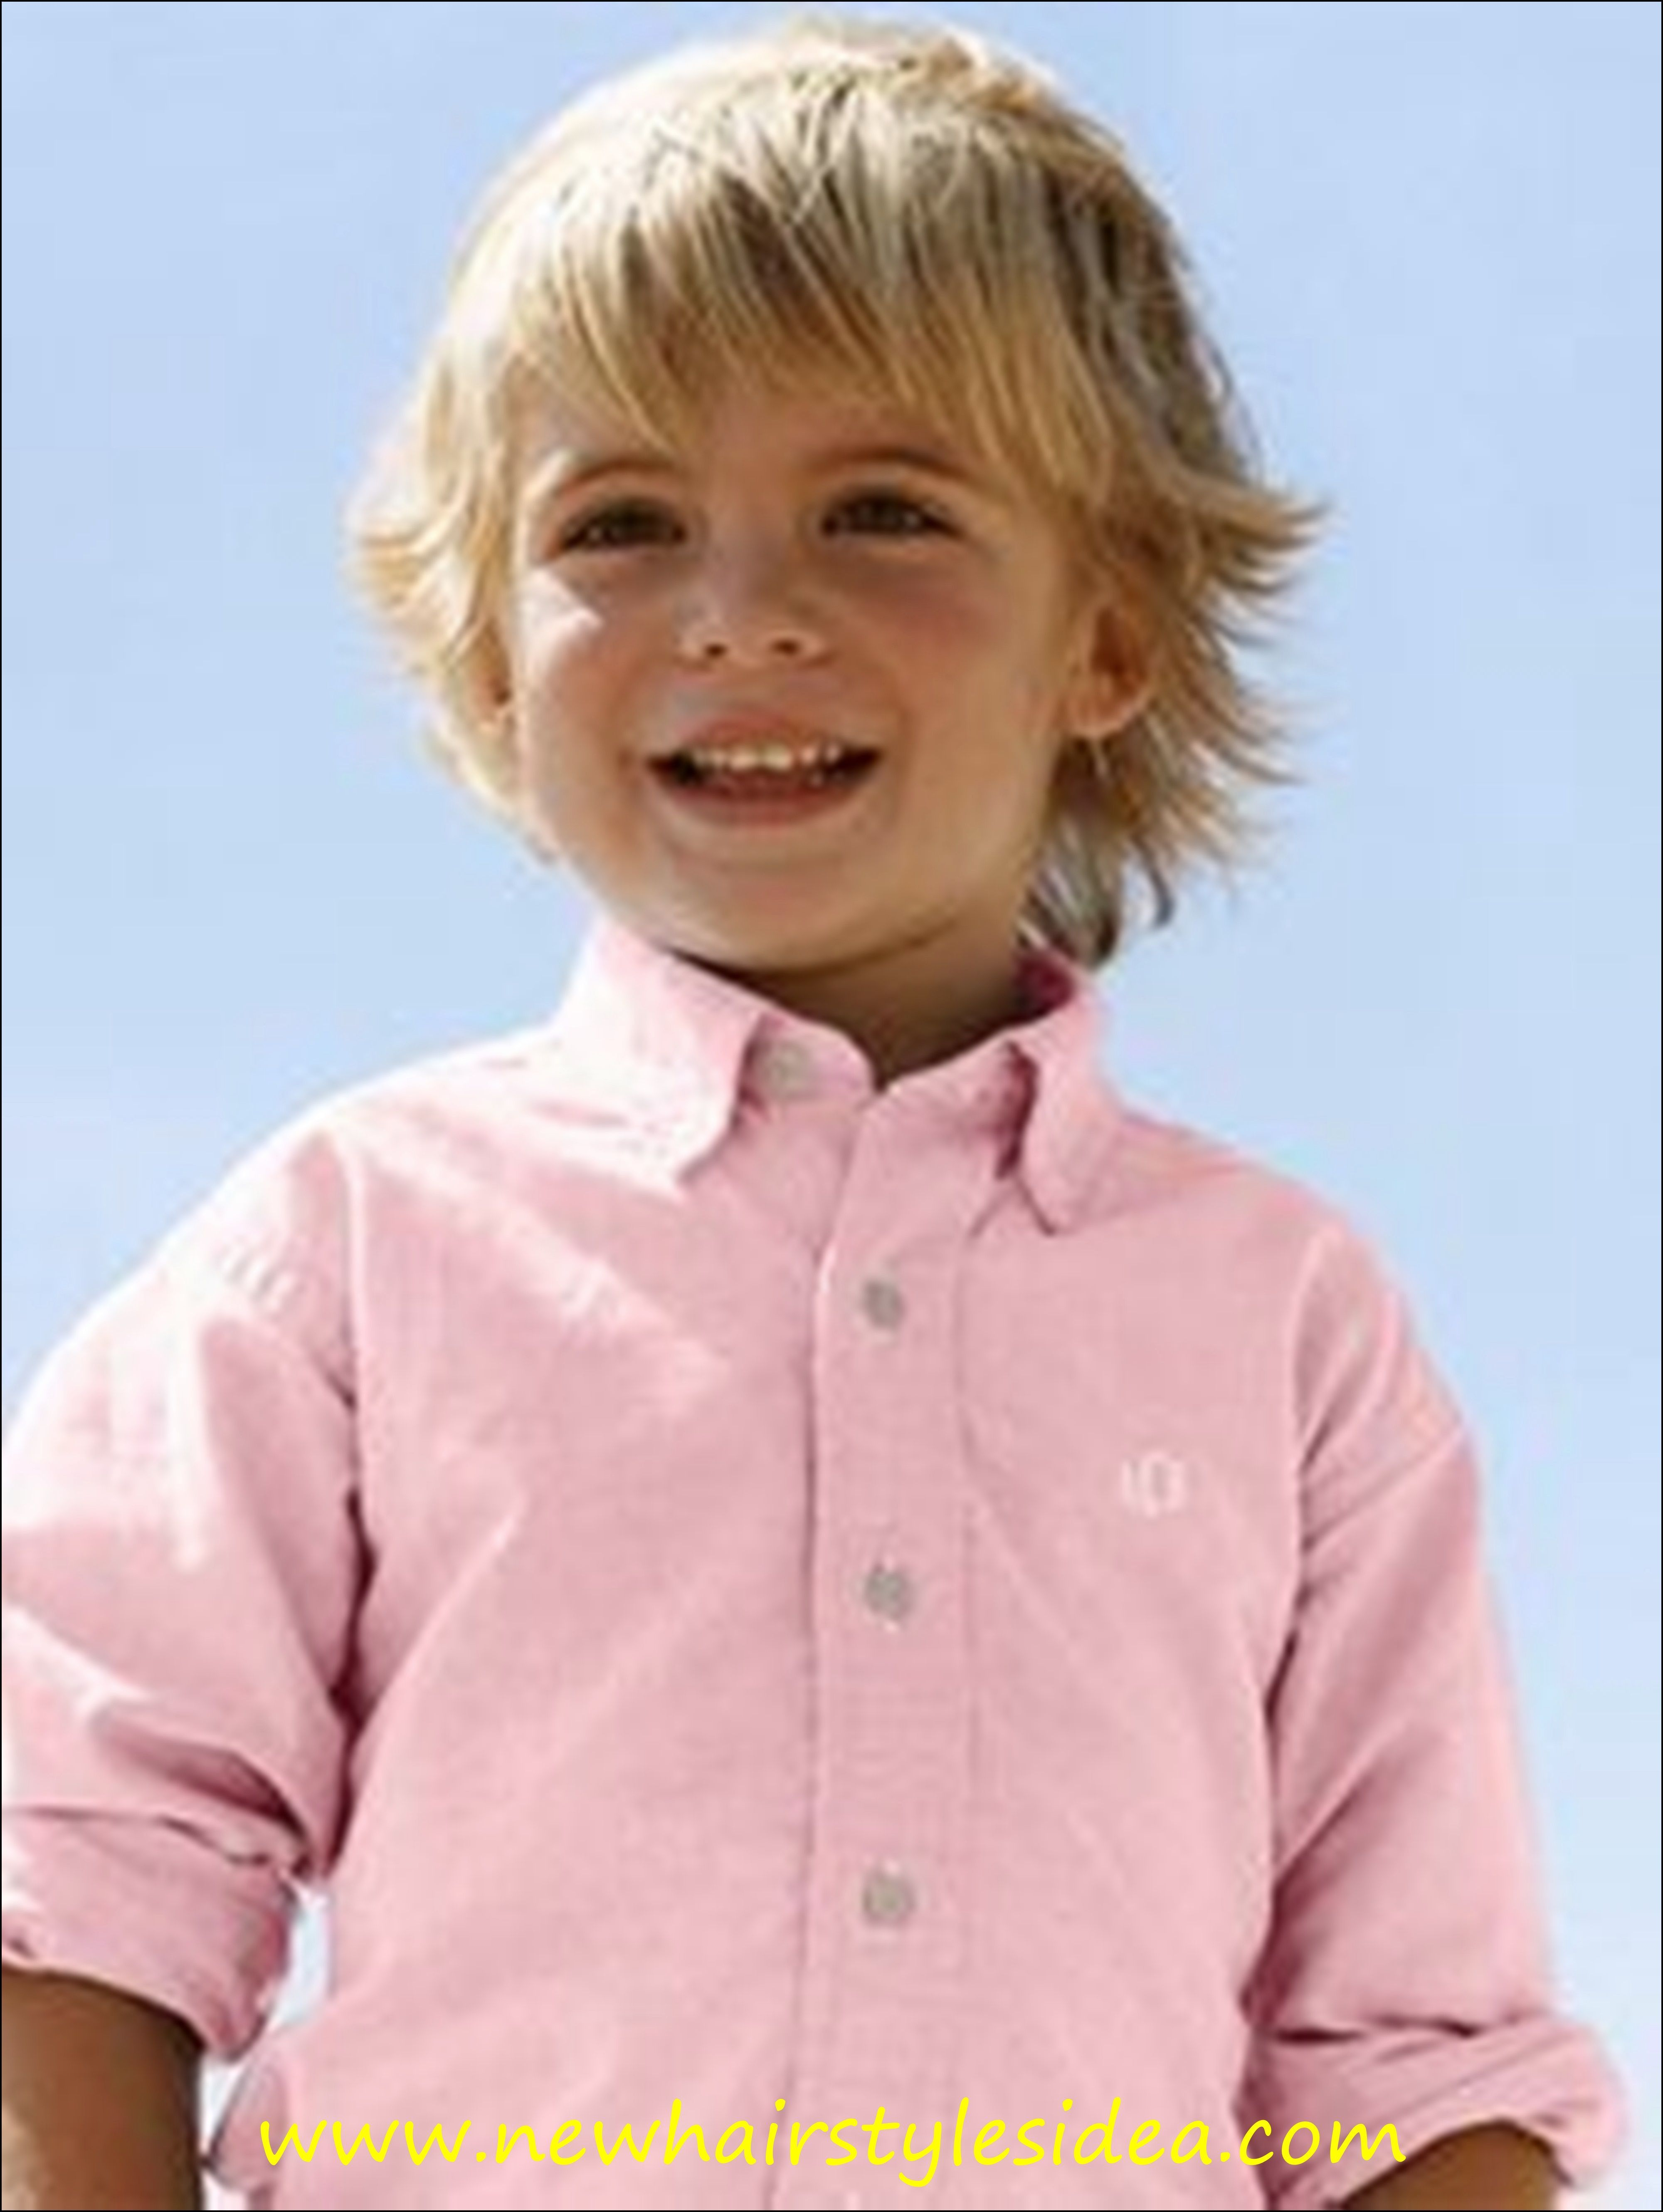 boys long hairstyles - bing images